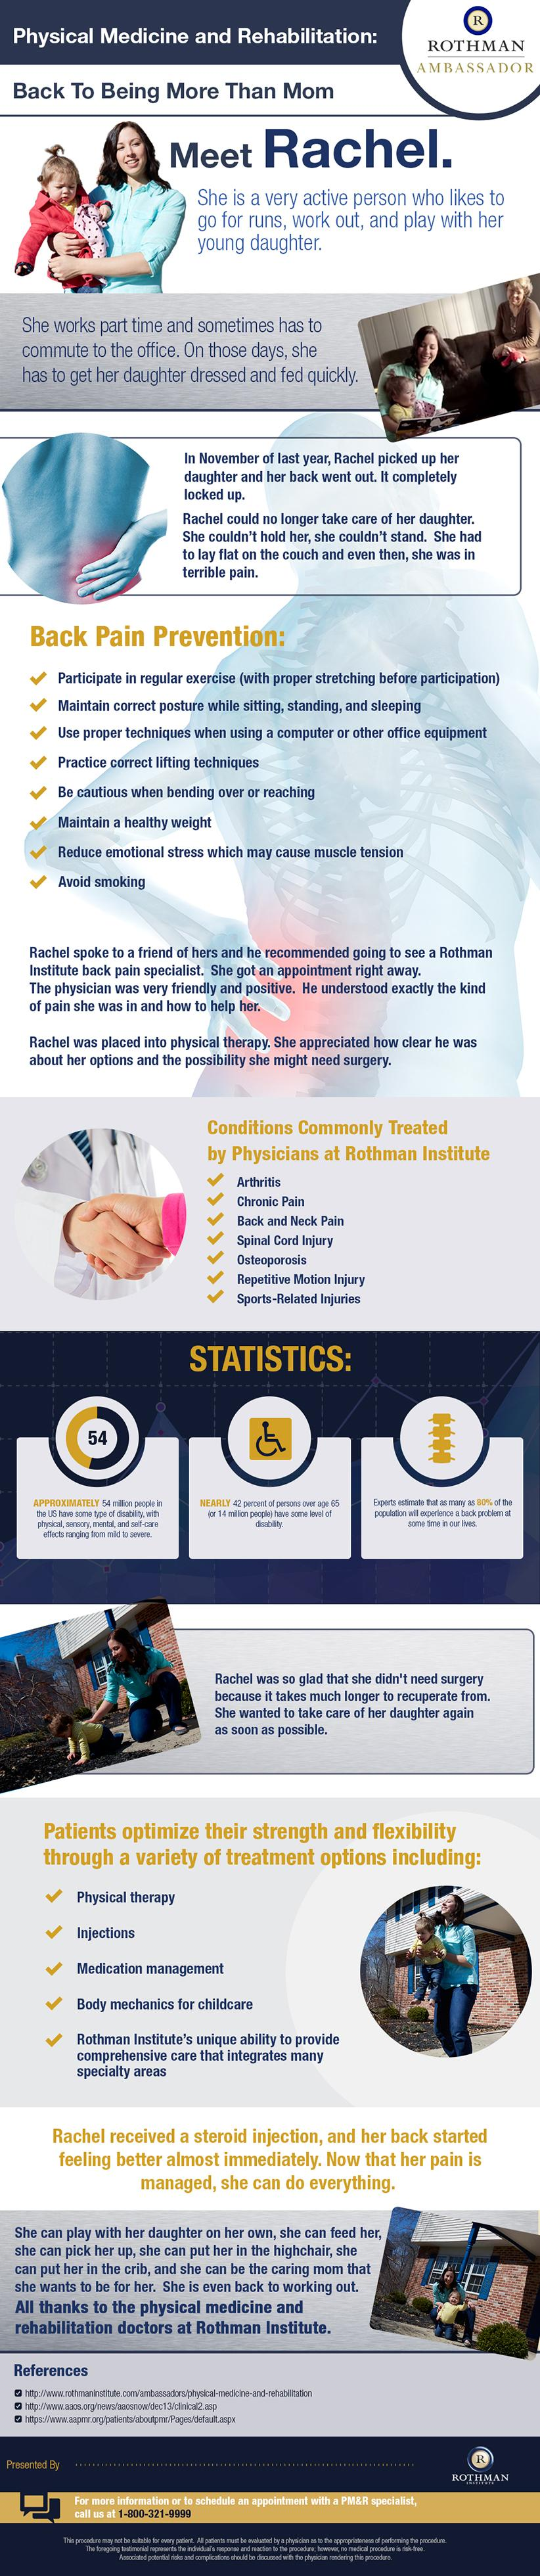 Physical Medicine And Rehabilitation Infographic